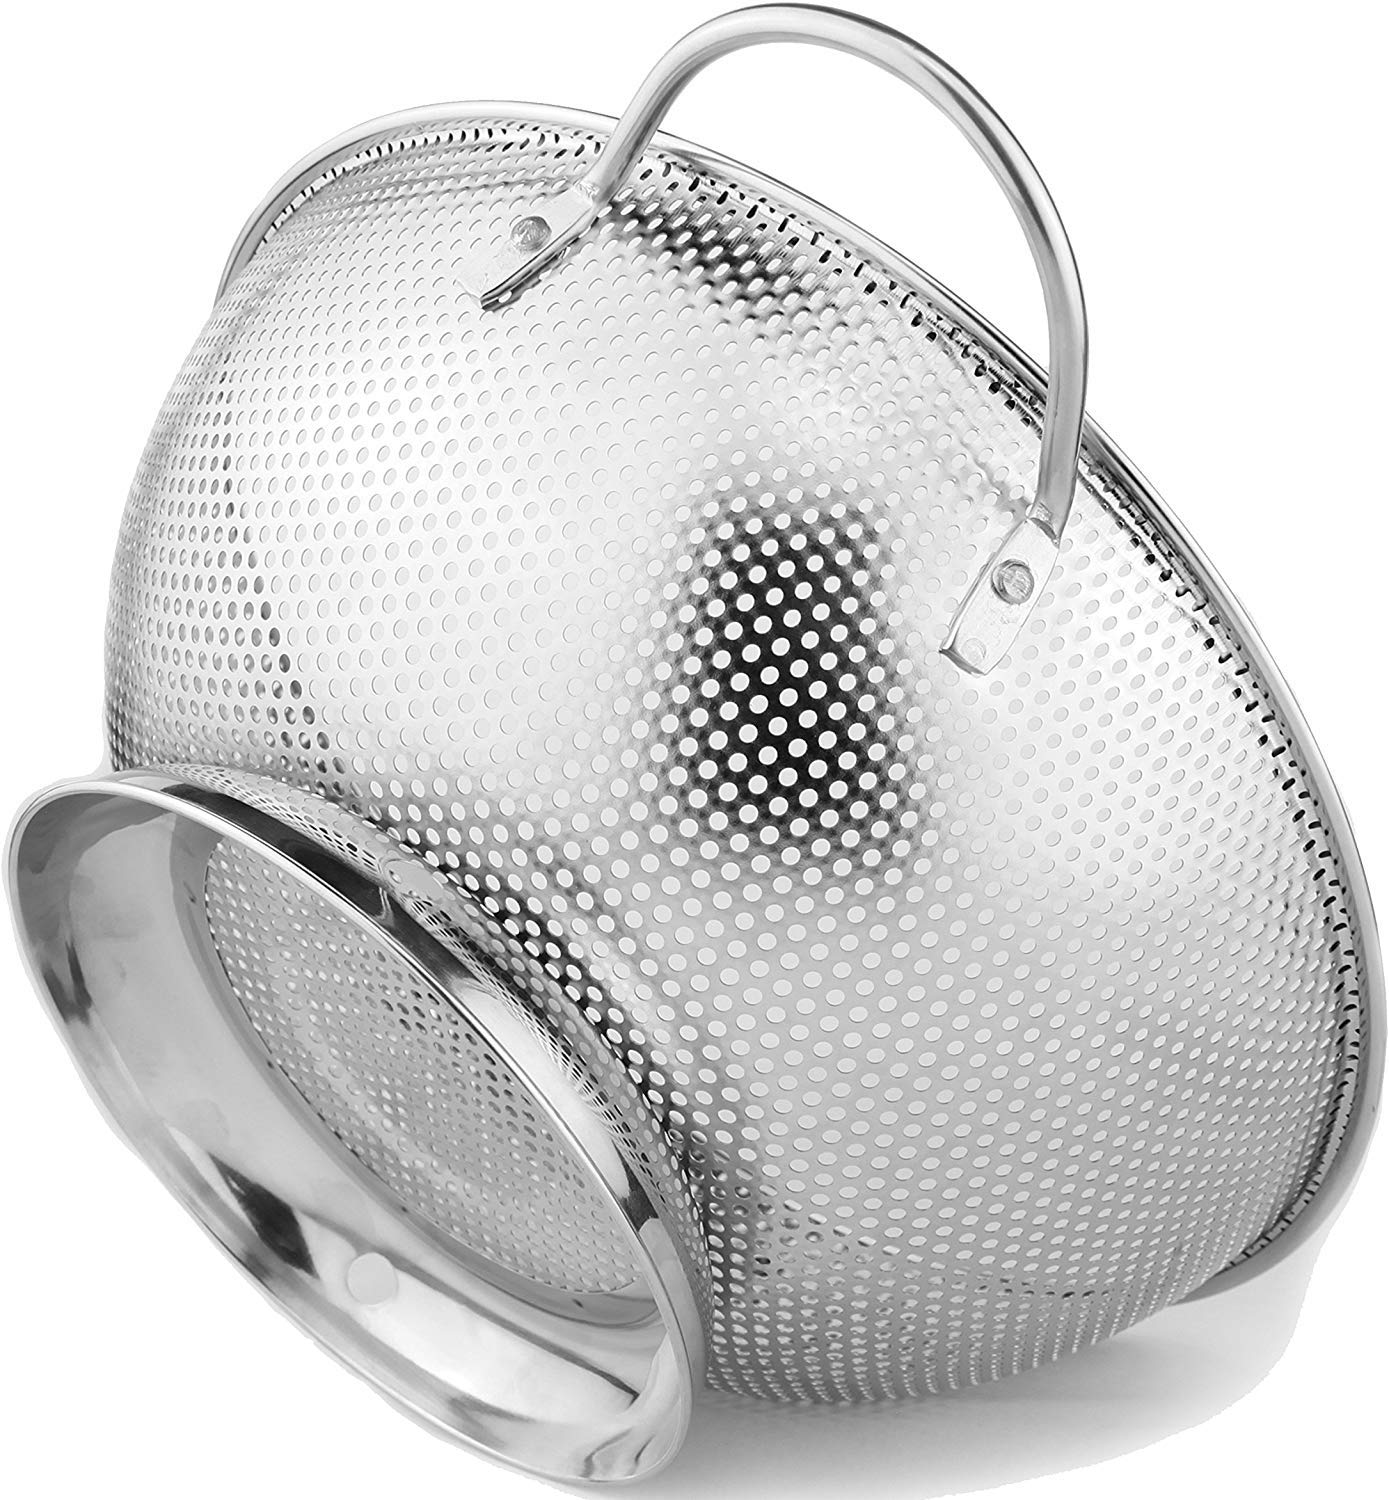 OLIYA Stainless? ?Steel? 5-Quart???? Colander:? ?Metal? ?Pasta? ?Strainer with? ?Handles? ?&? ?Base? ?-? ?Large? ?Strainer? ?Basket? ?for? ?Pasta,? ?Rice Noodles & More: Dishwasher?? Safe? 81fMJ9eoKoL